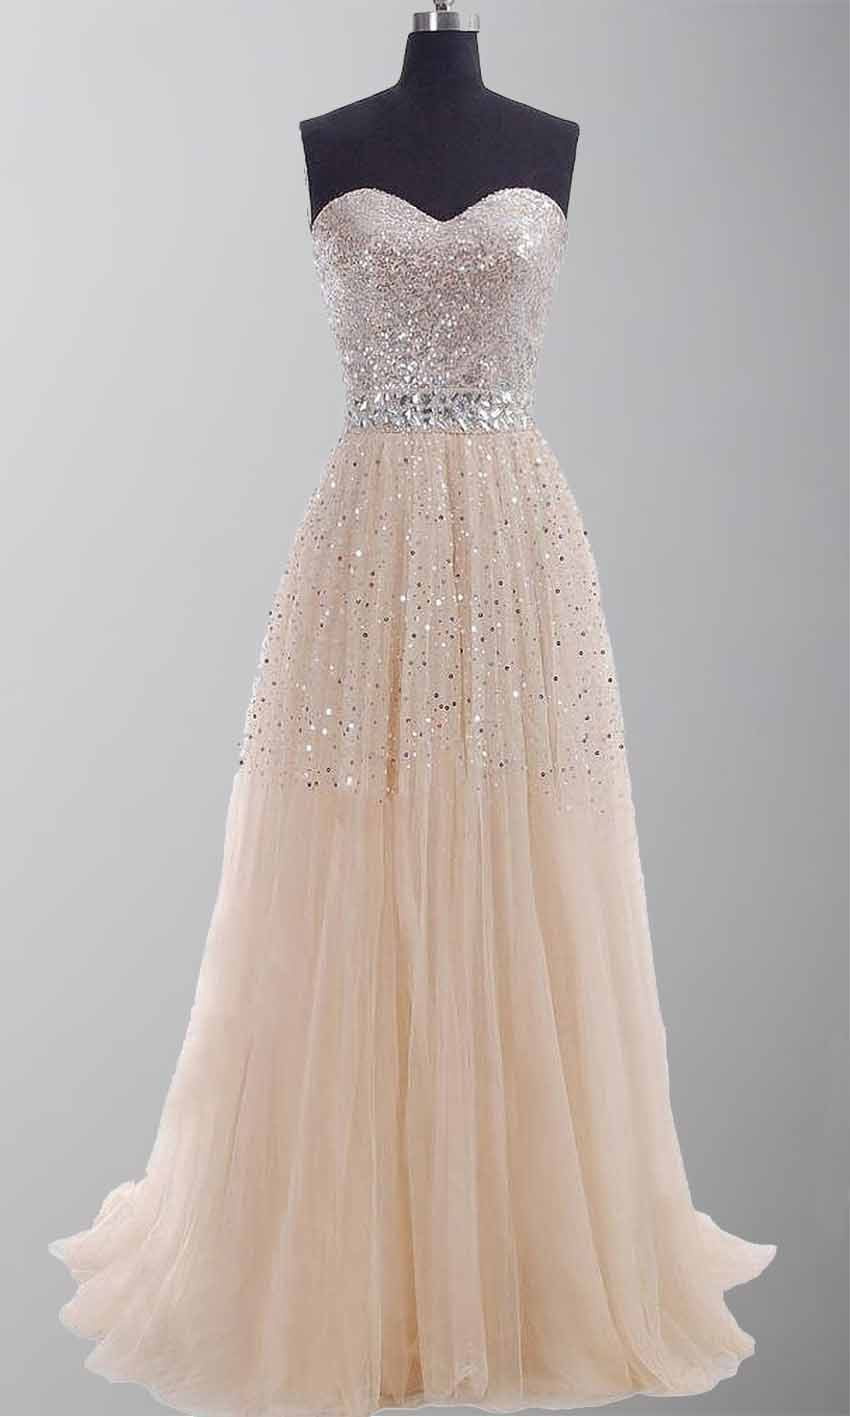 Champagne Sequin Sweetheart Long Prom Gowns Ksp254 Ksp254